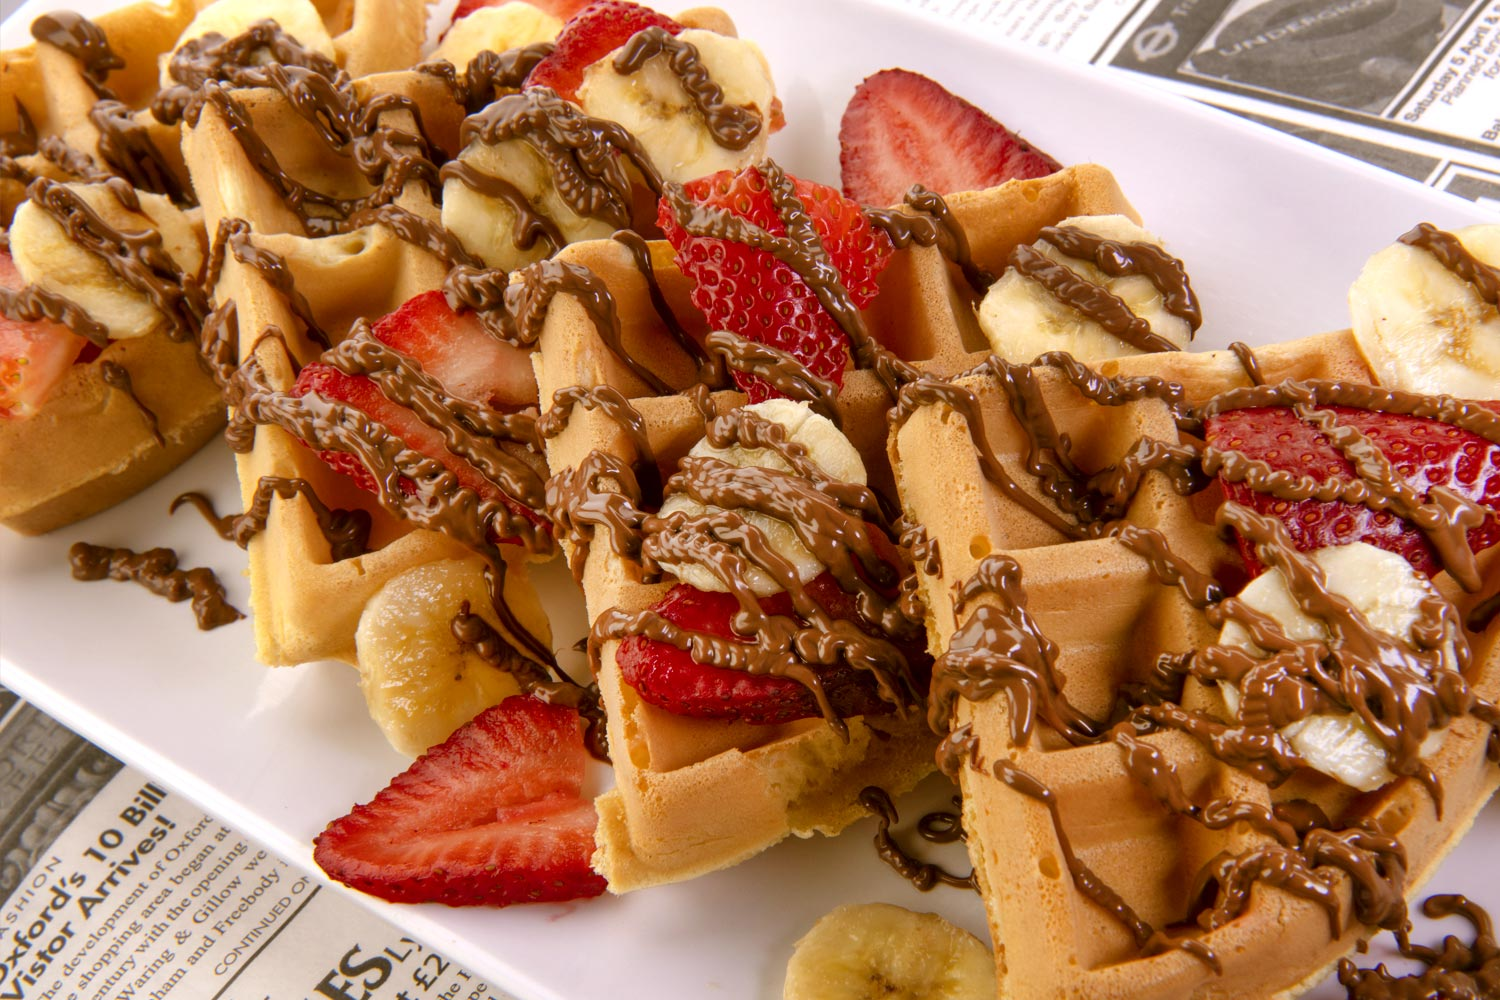 Nutella Waffle at Mitchell's Restaurant